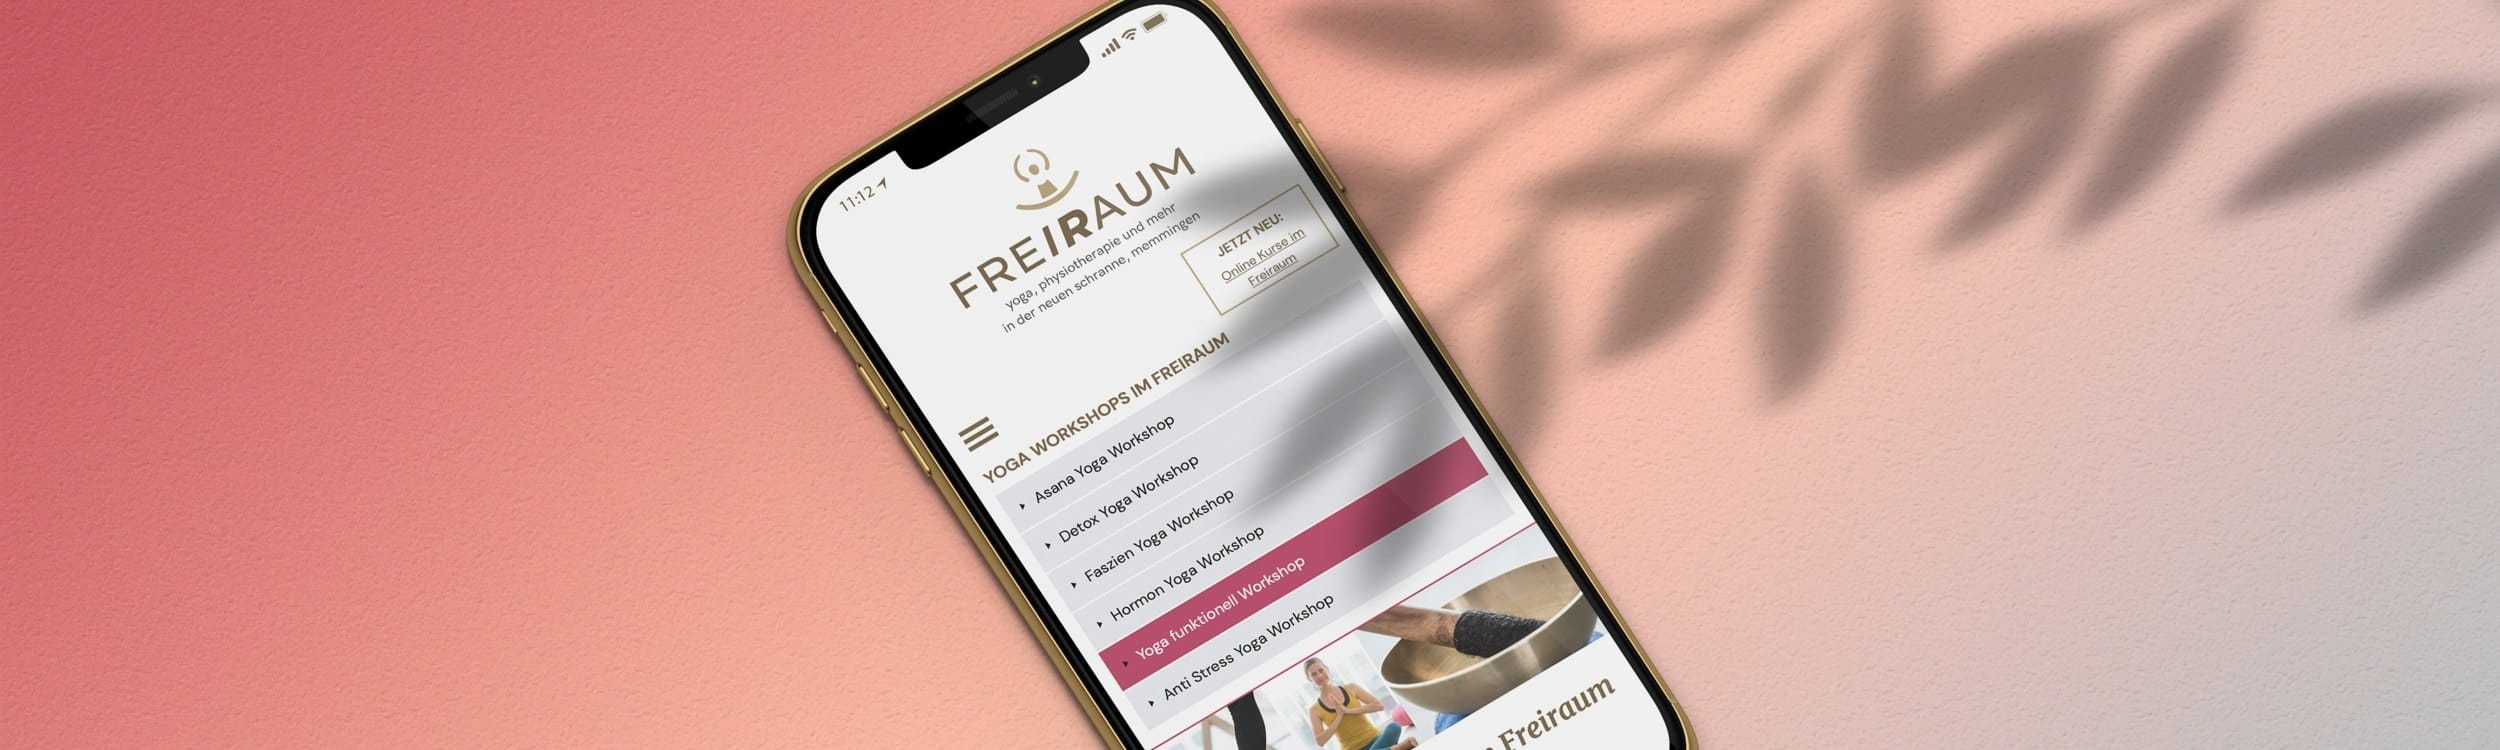 Freiraum Memmingen – Corporate Design